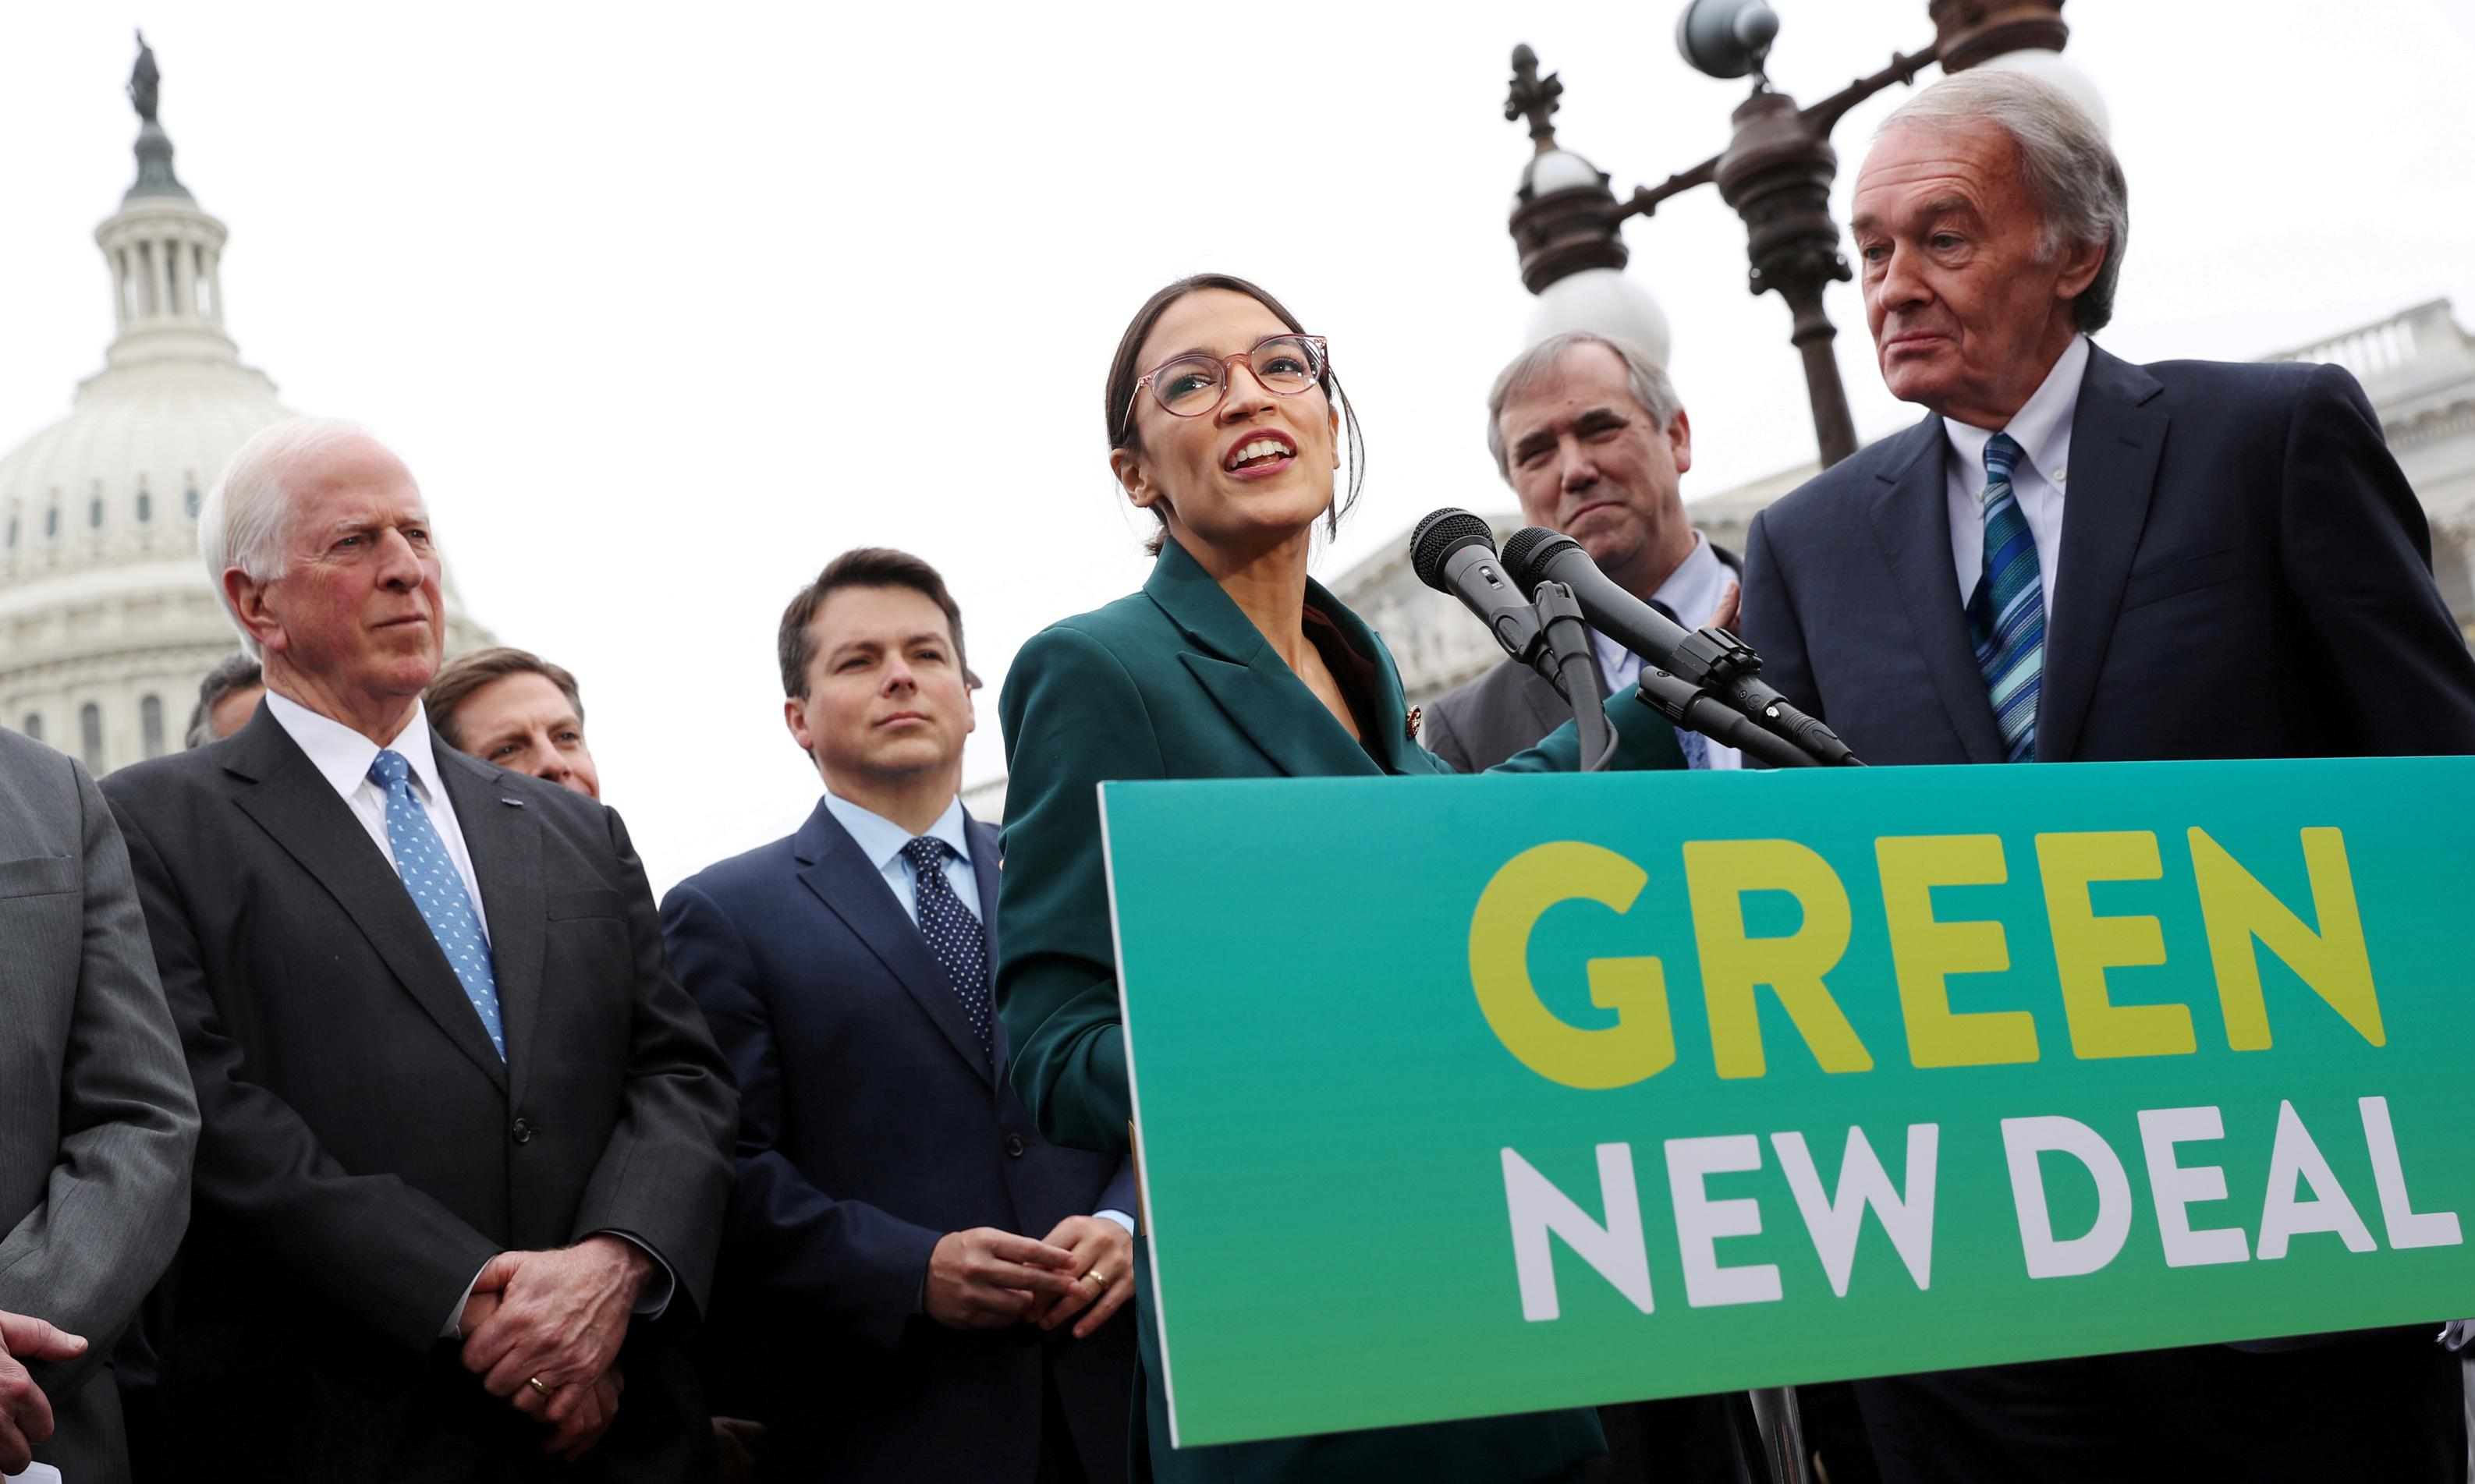 Labour members launch Green New Deal inspired by US activists